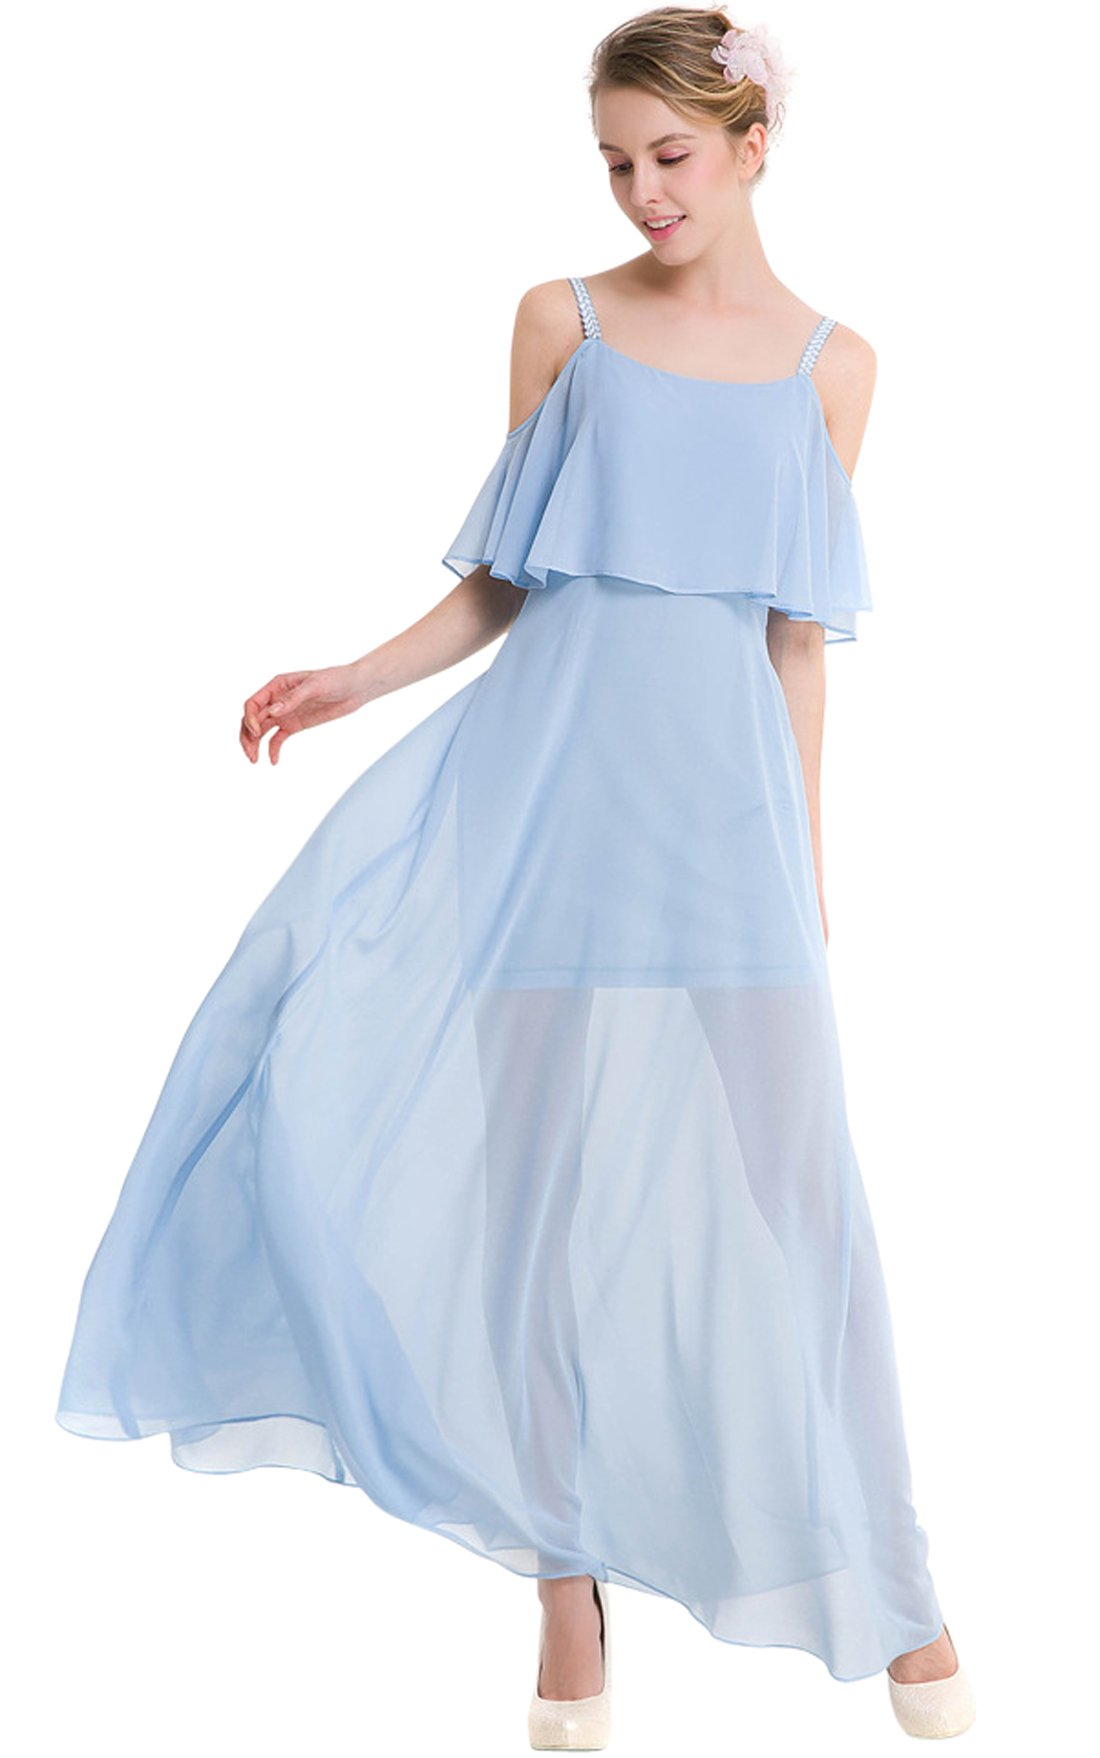 Available at Amazon: chouyatou Women's Sexy Off Shoulder Tiered Flowy Stappy Maxi Beach Dress